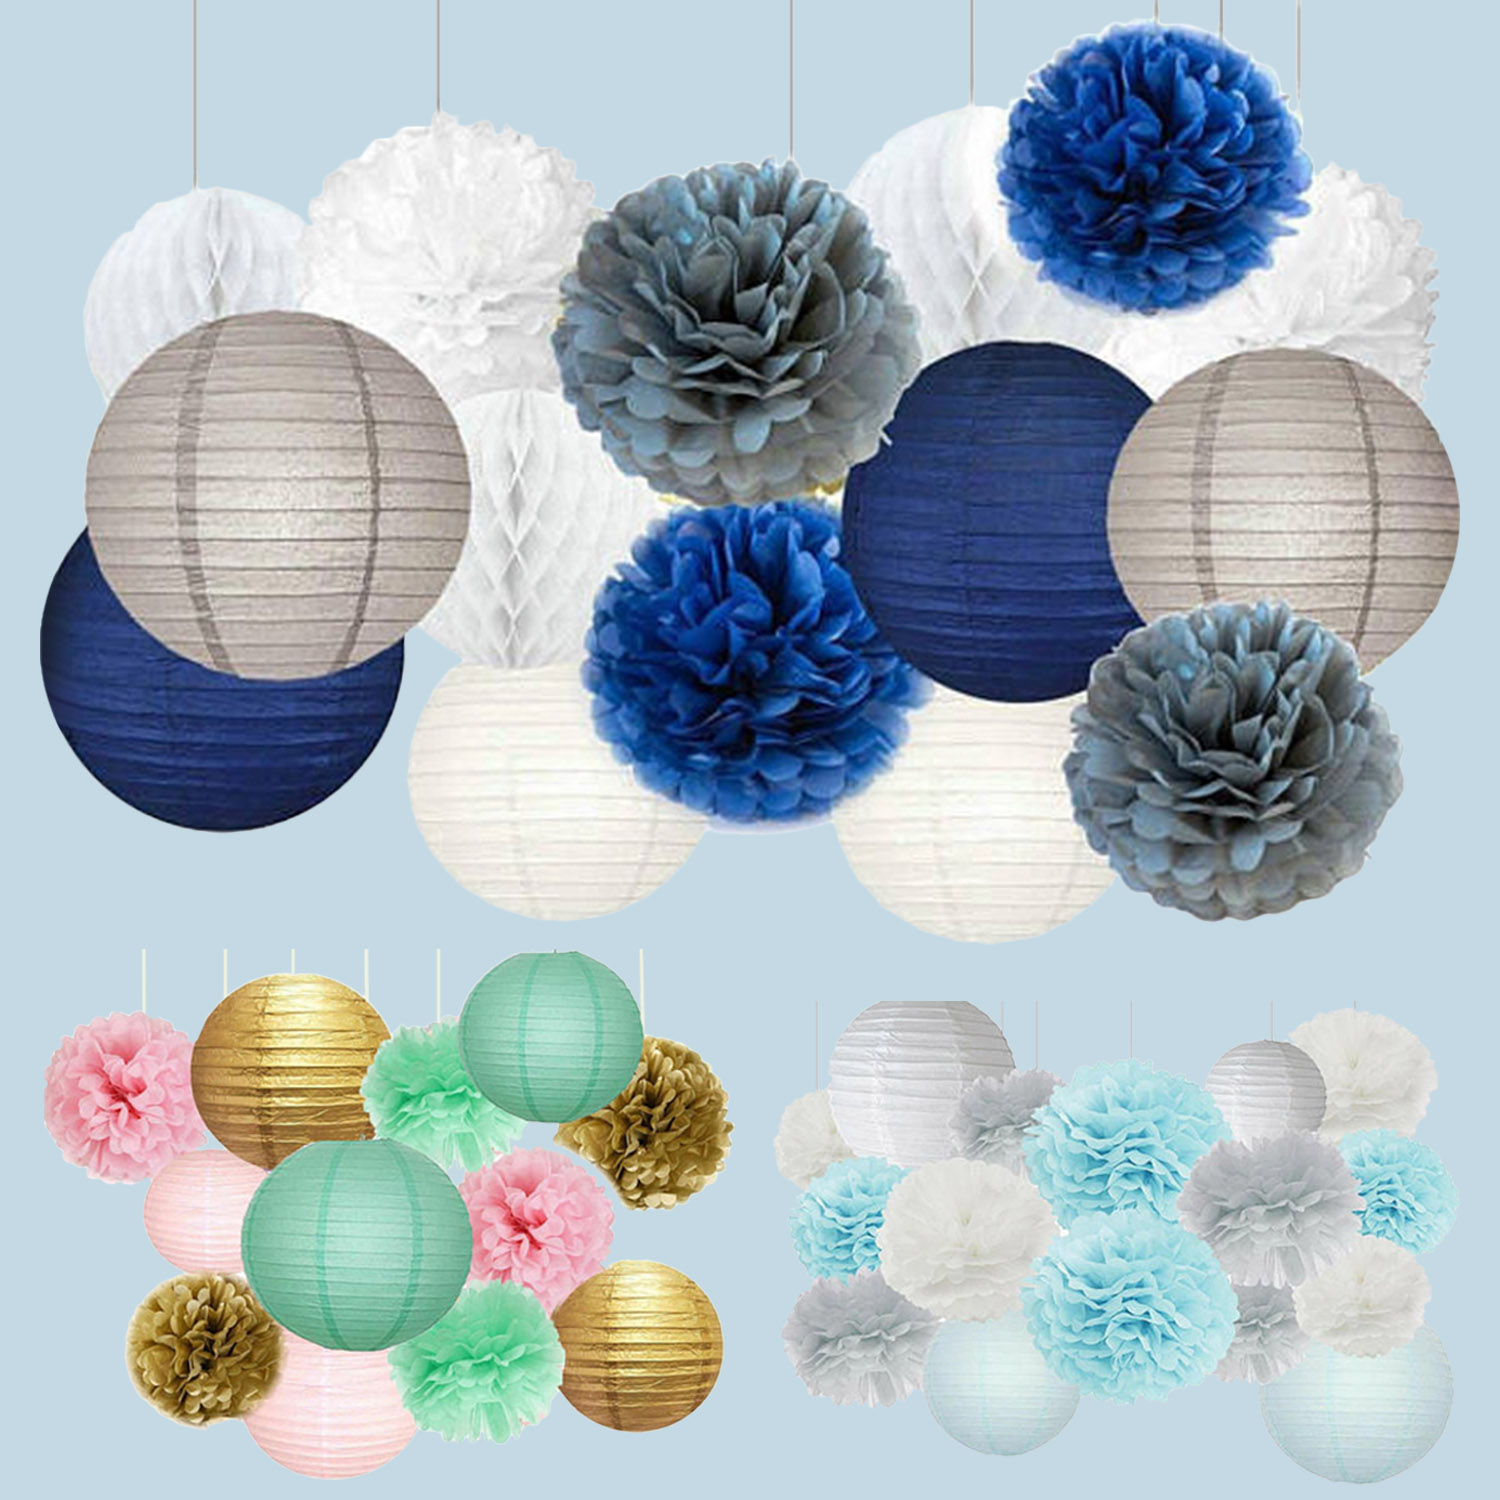 Home Store Wedding Festival Party Round Flower Shape Paper Lanterns Hanging DIY Craft Decorations Set